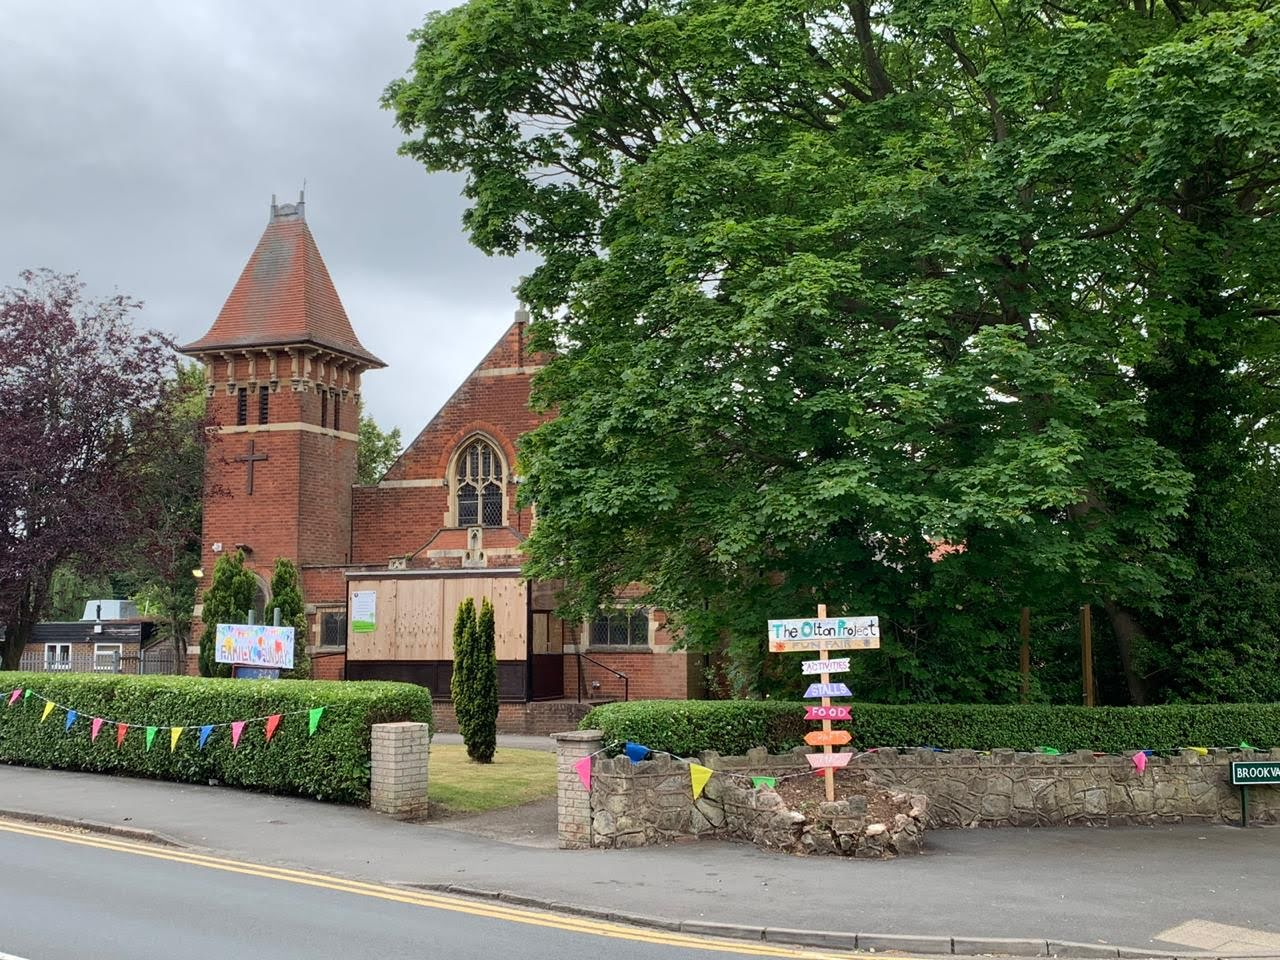 Image of The Olton Project from outside, during the Summer Fair.